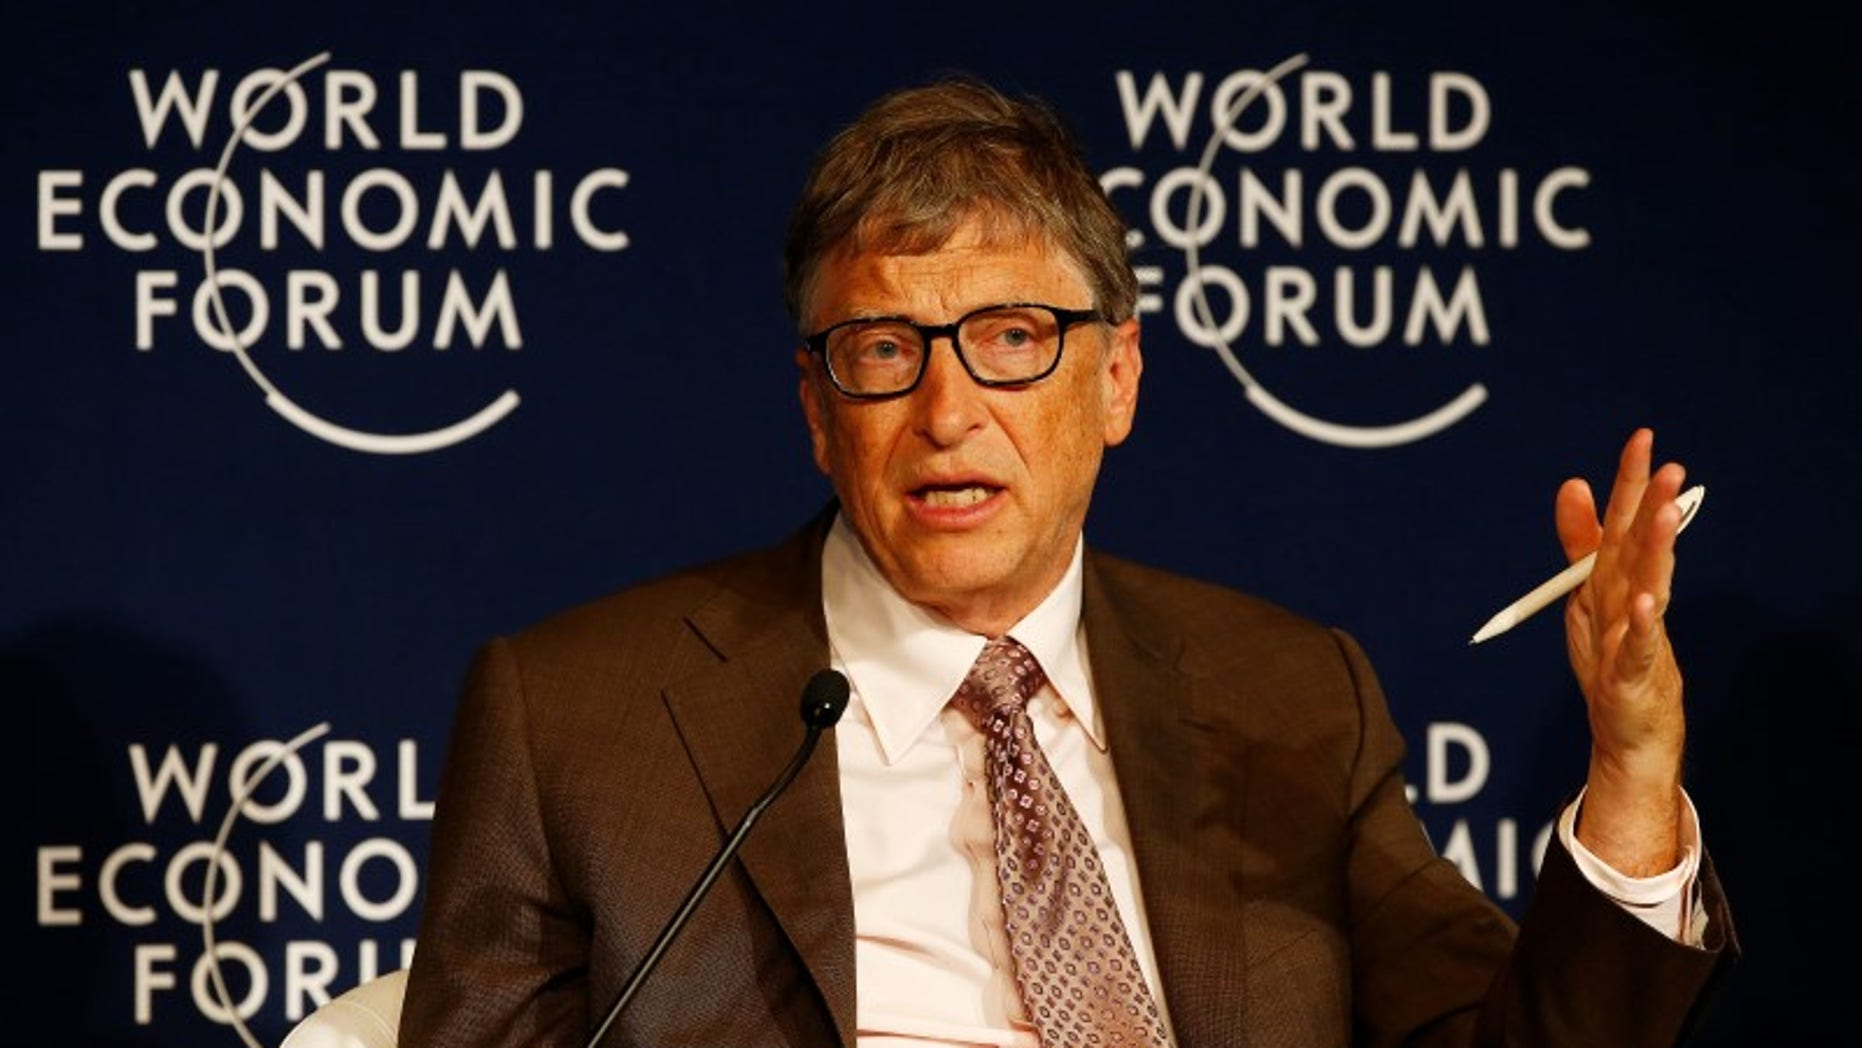 Microsoft co-founder Bill Gates attends the annual meeting of the World Economic Forum (WEF) in Davos, Switzerland January 22, 2016.  REUTERS/Ruben Sprich